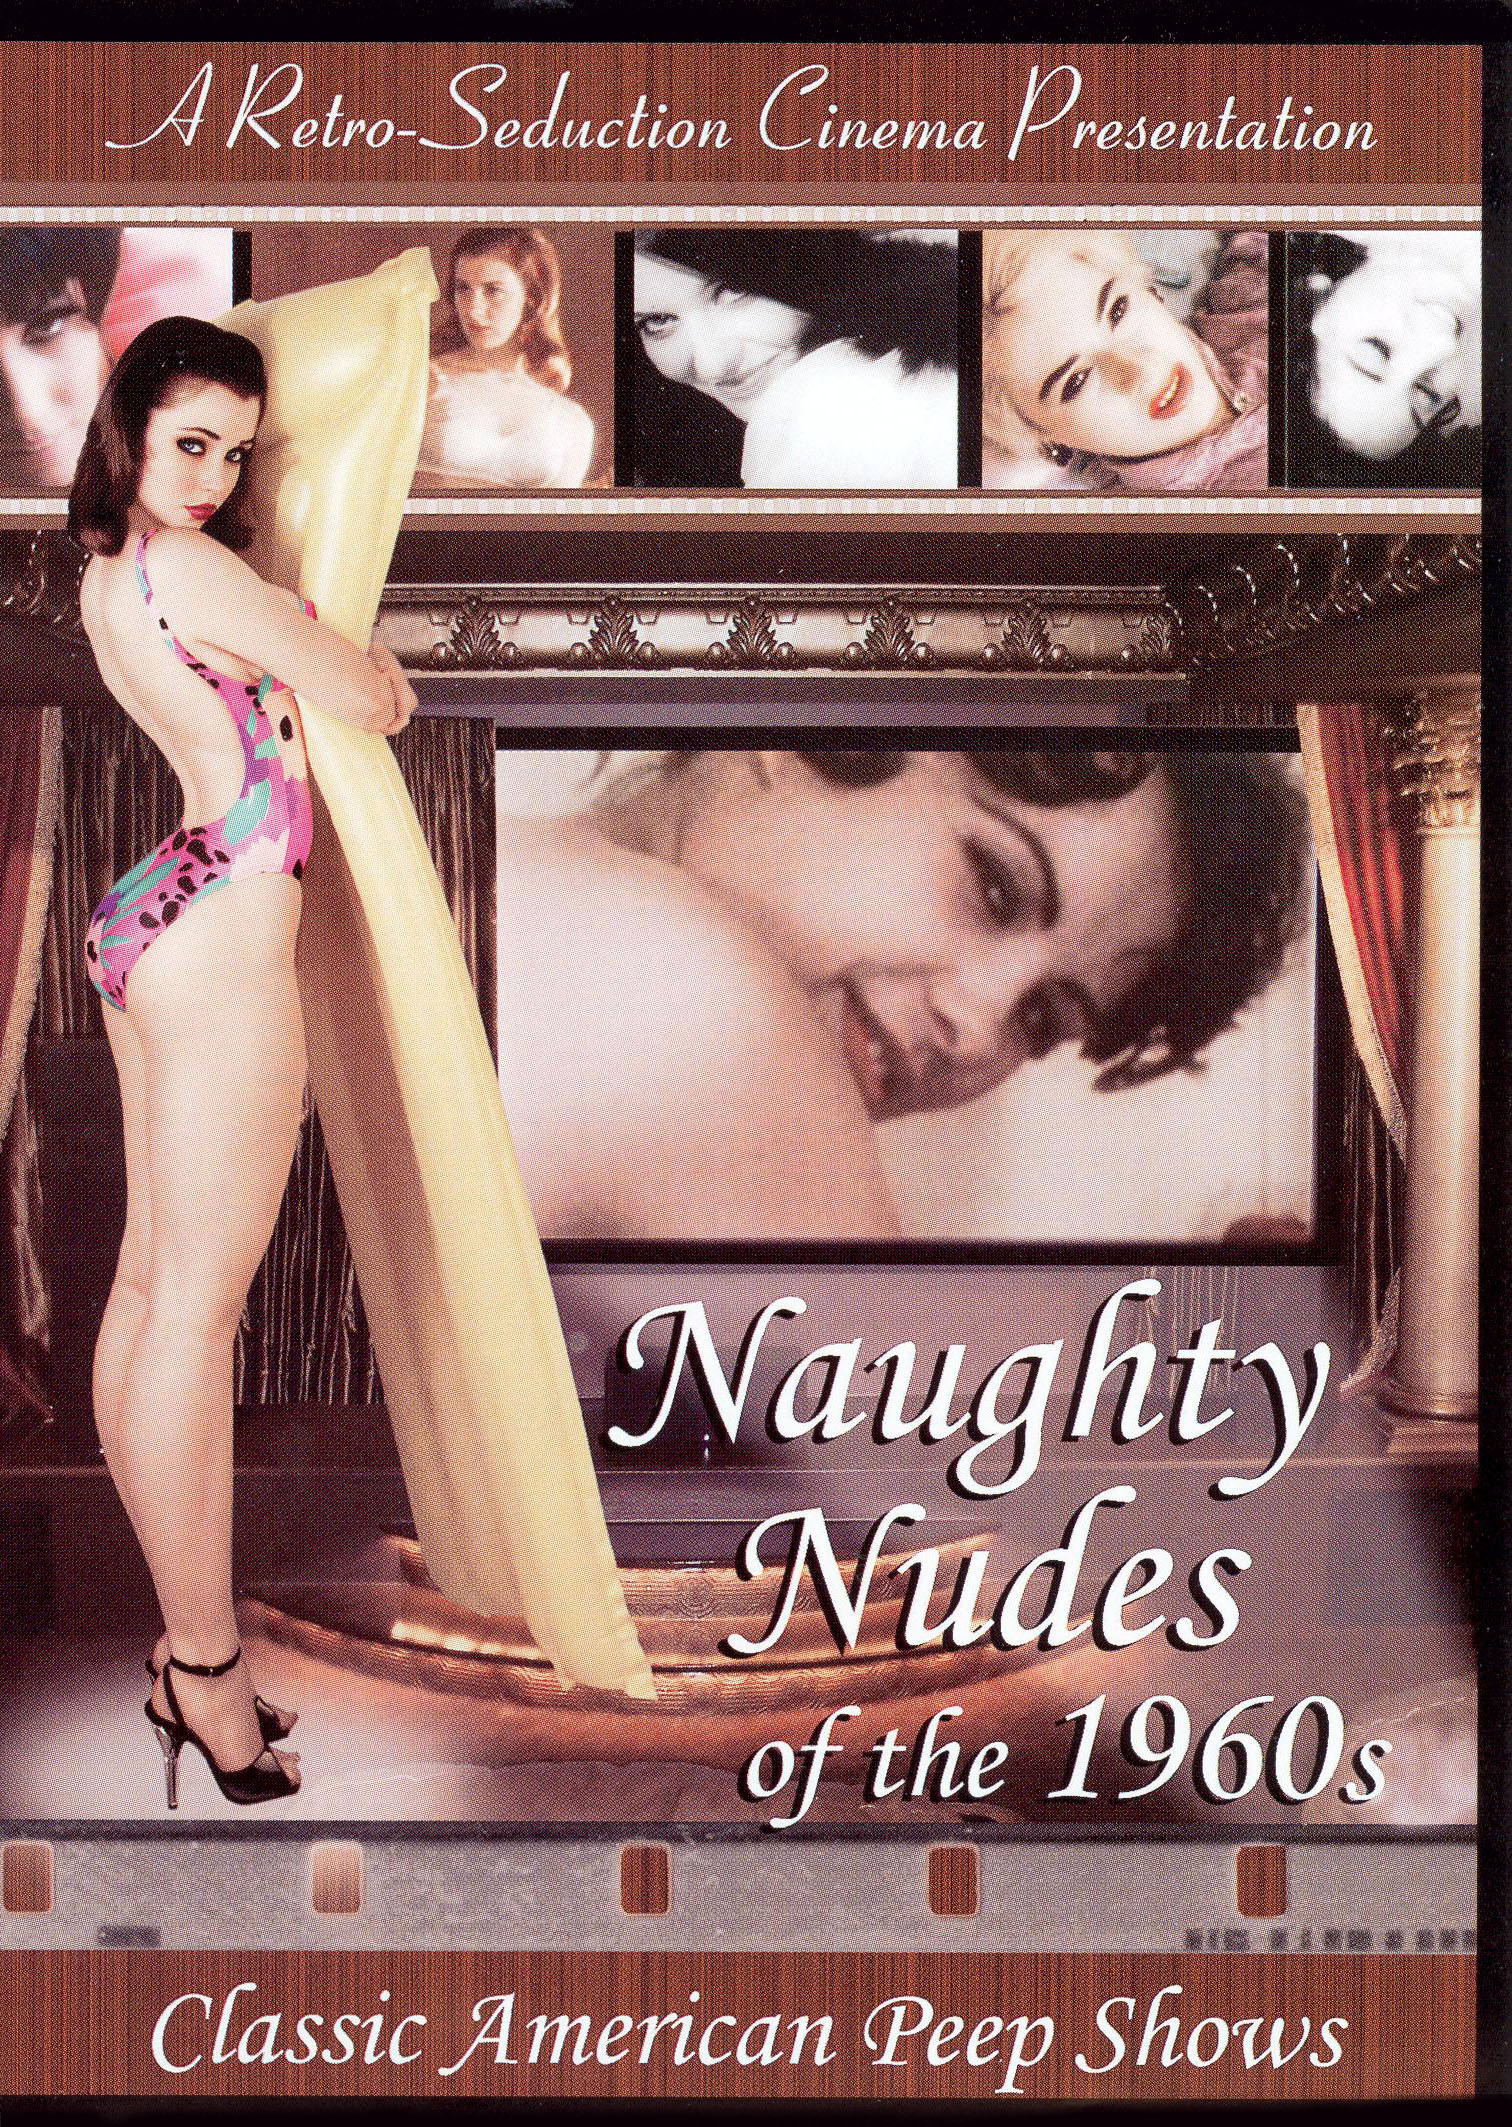 Naughty Nudes of the 1960s